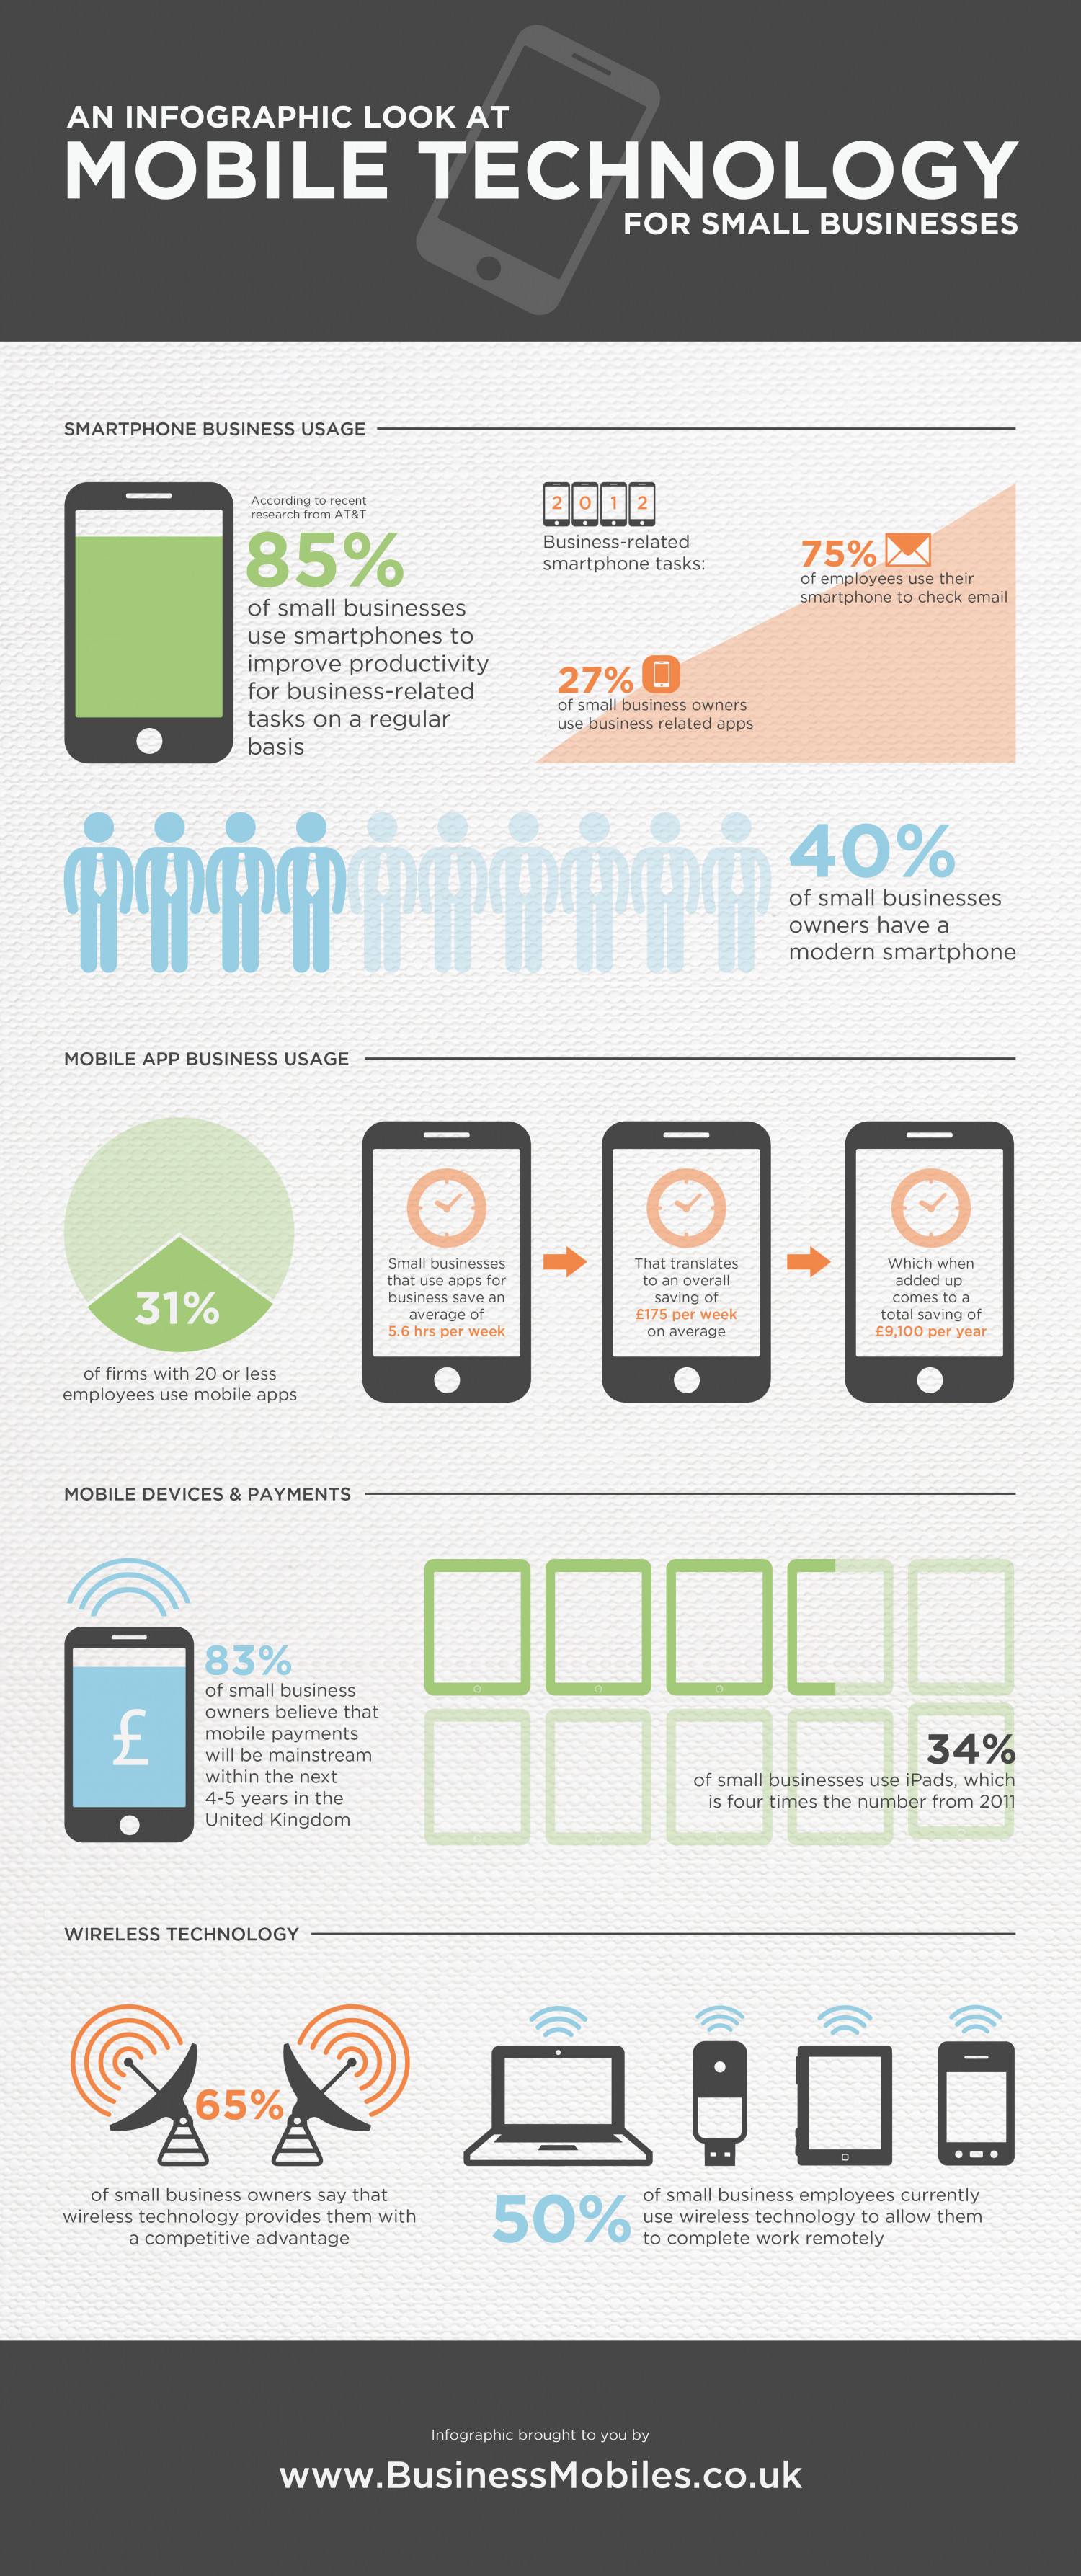 Mobile Technology For Small Businesses Infographic